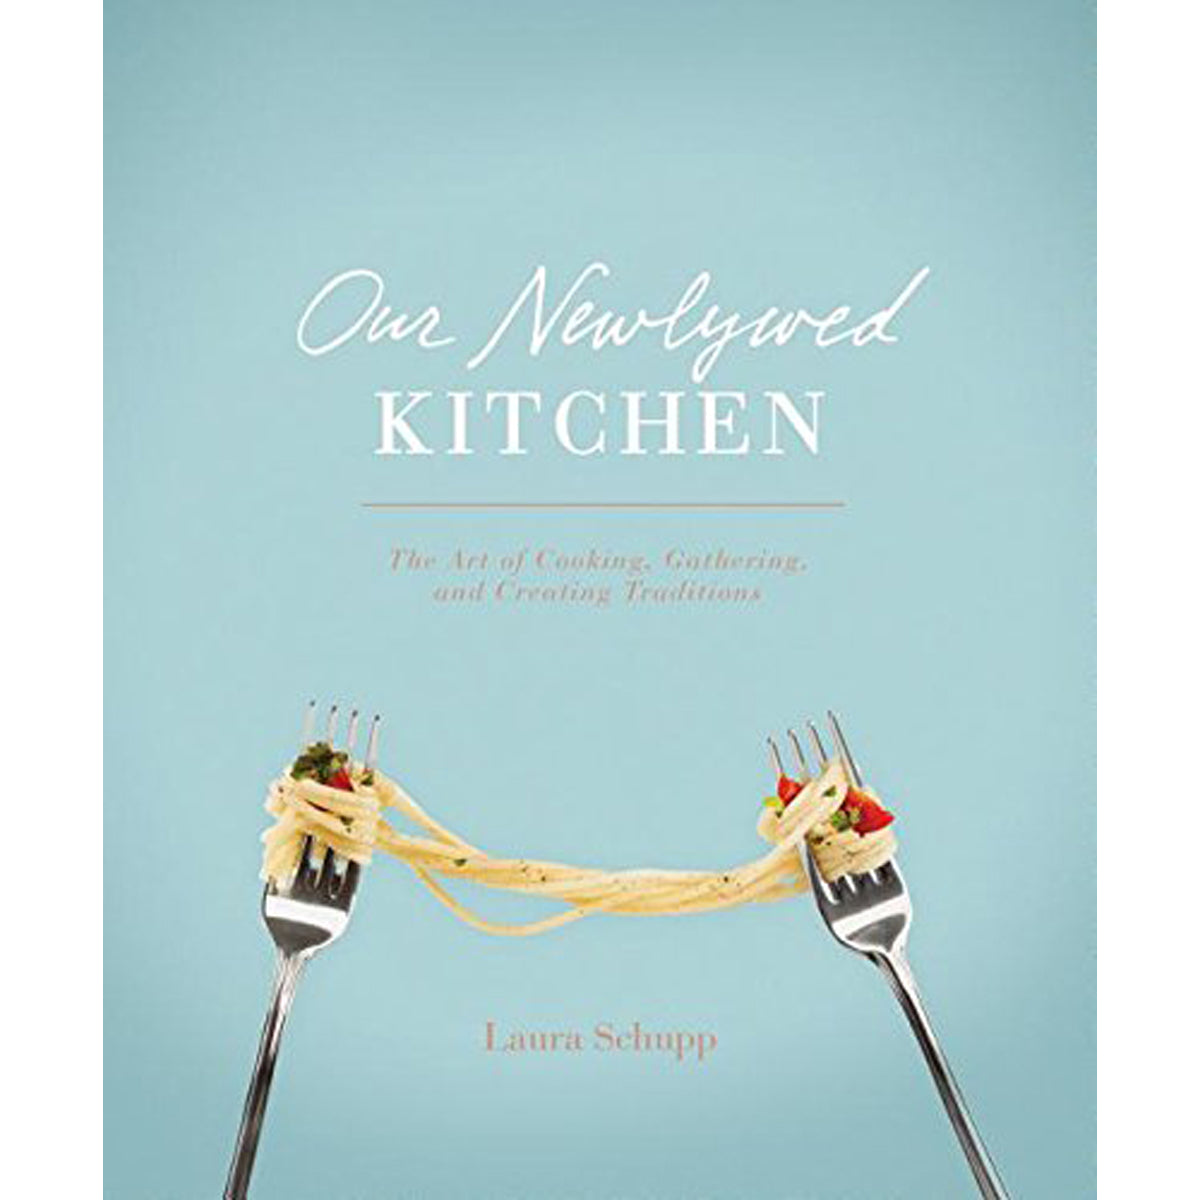 Our Newlywed Kitchen (Hardcover)